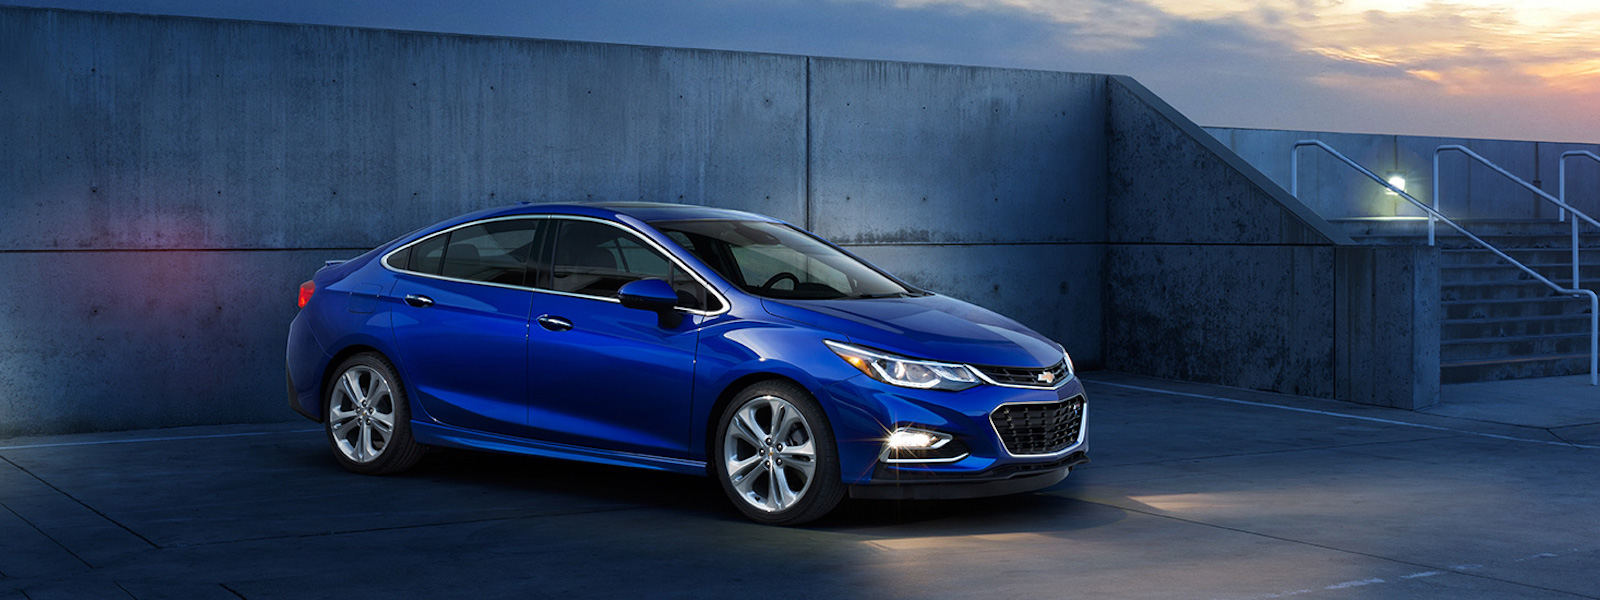 Chevy Cruze Features